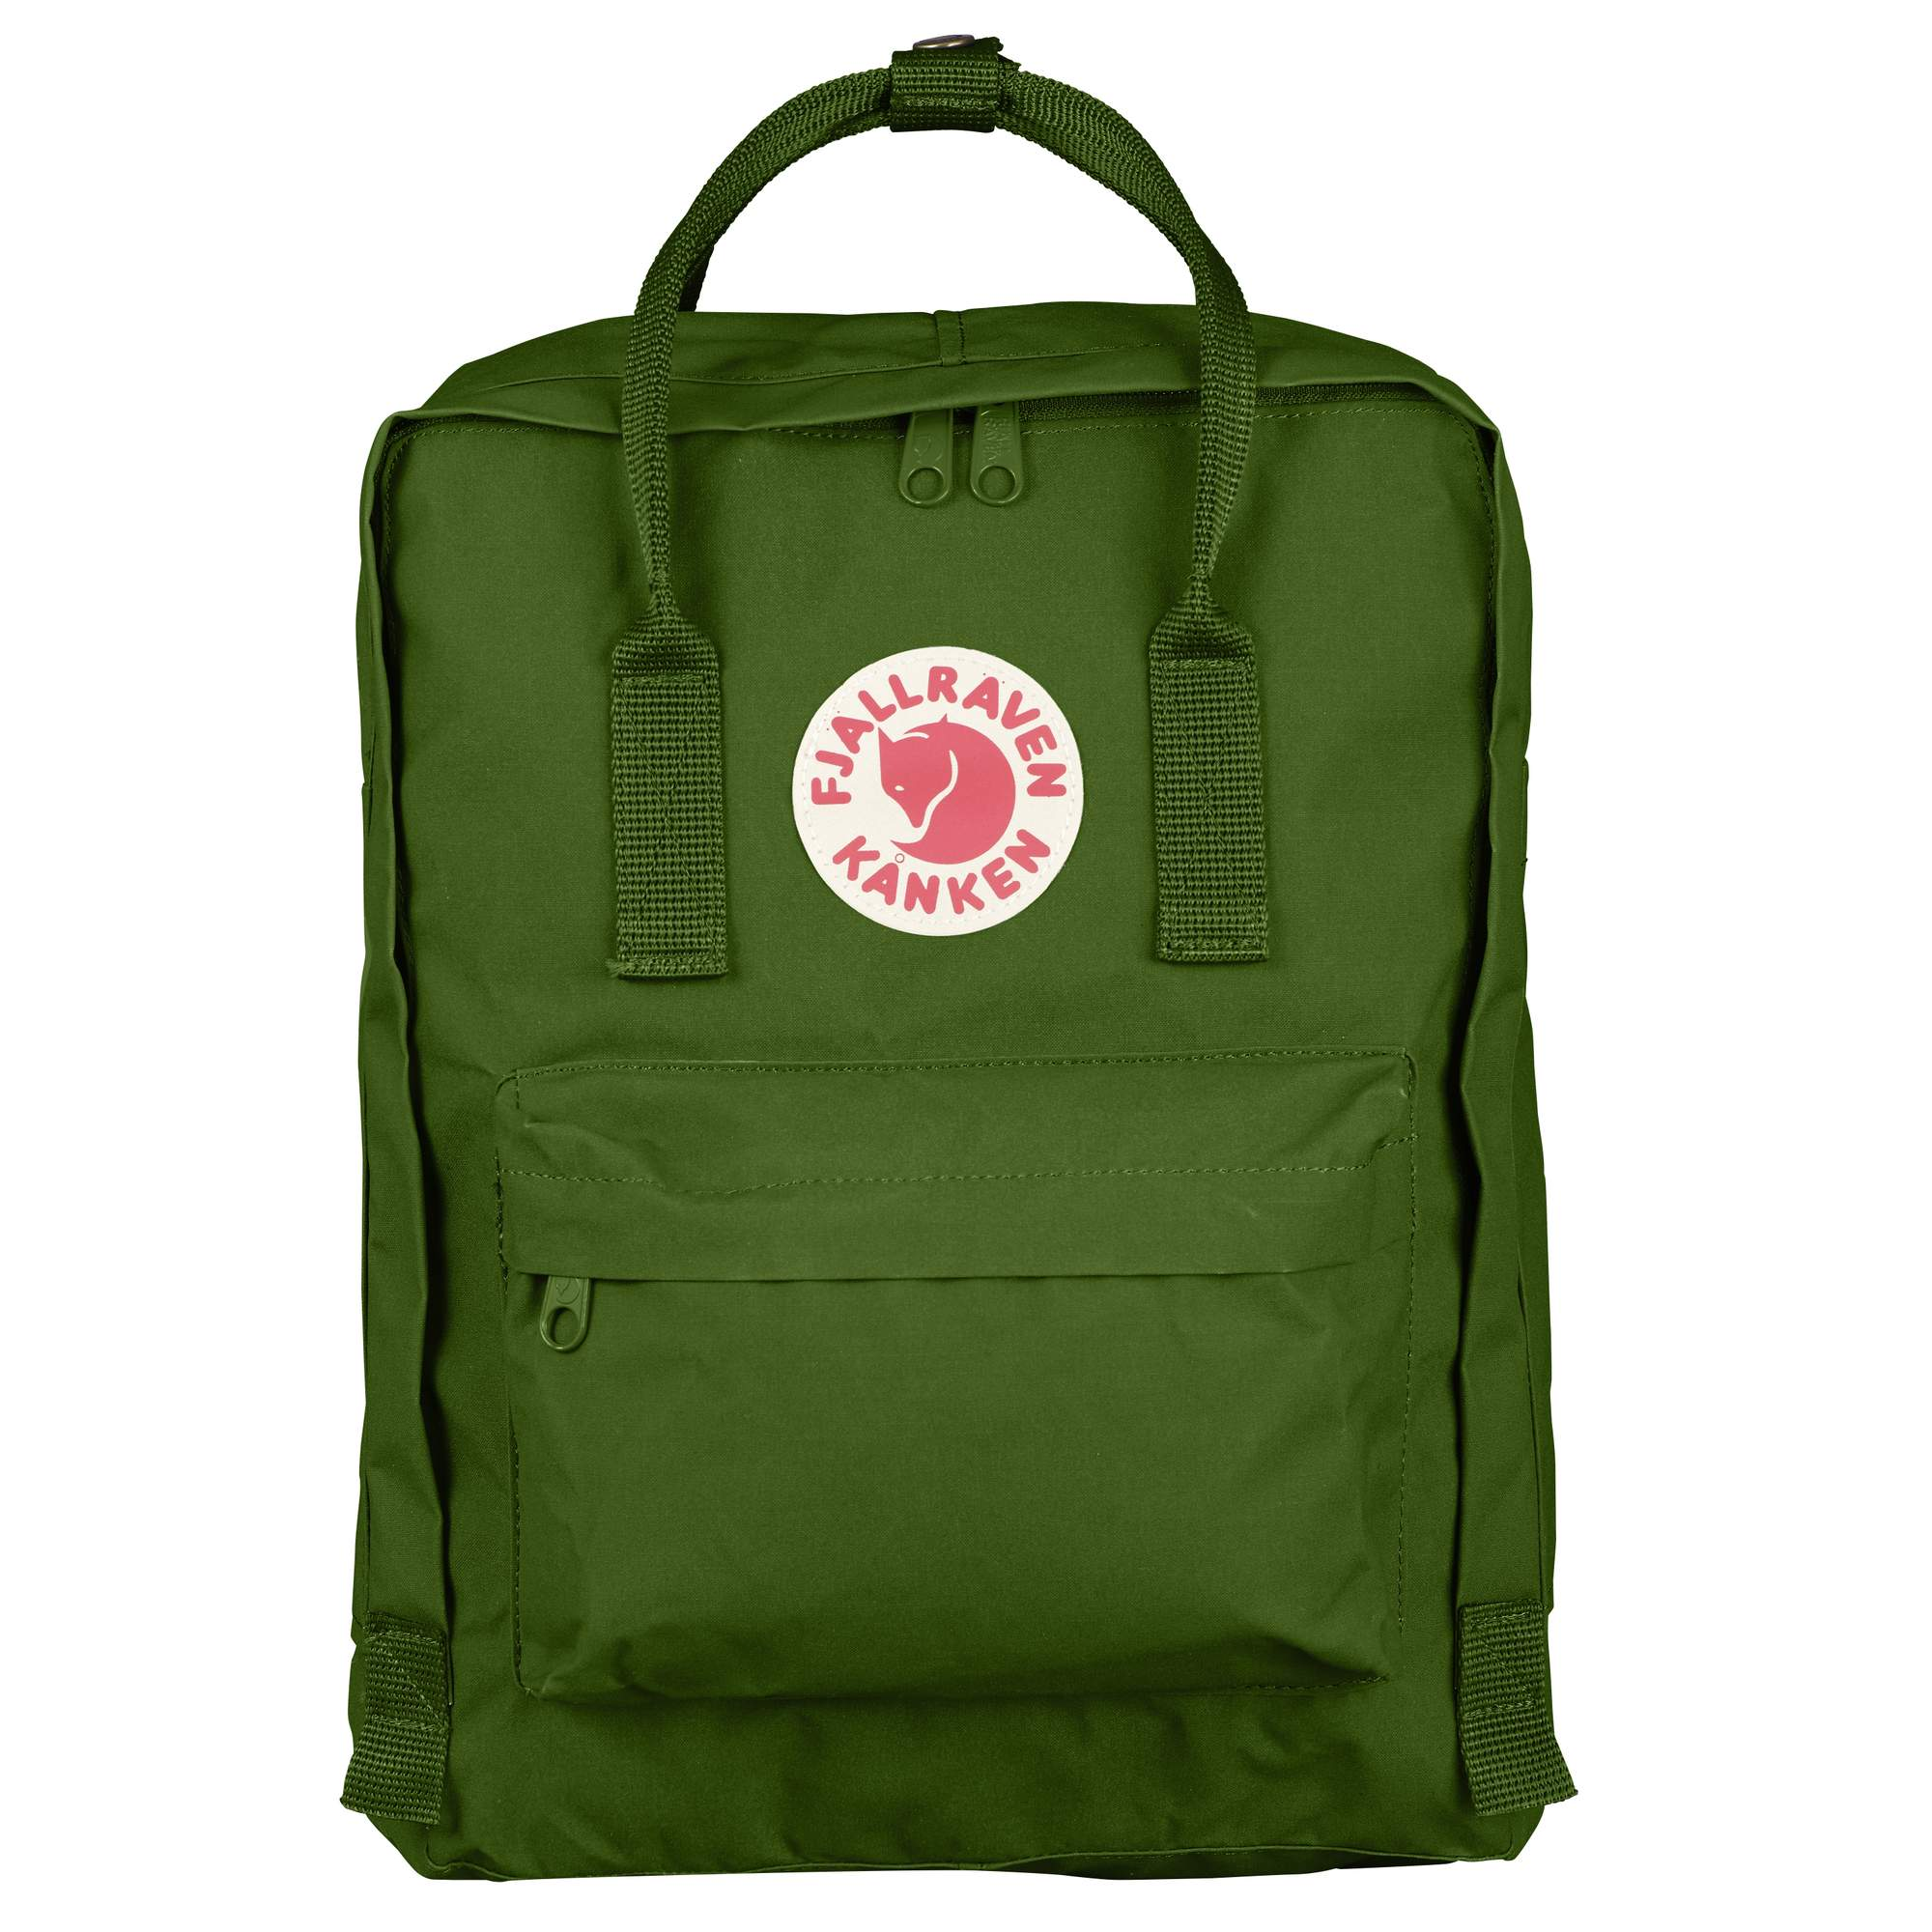 Рюкзак Fjallraven Kanken Leaf Green - Фото 1 большая